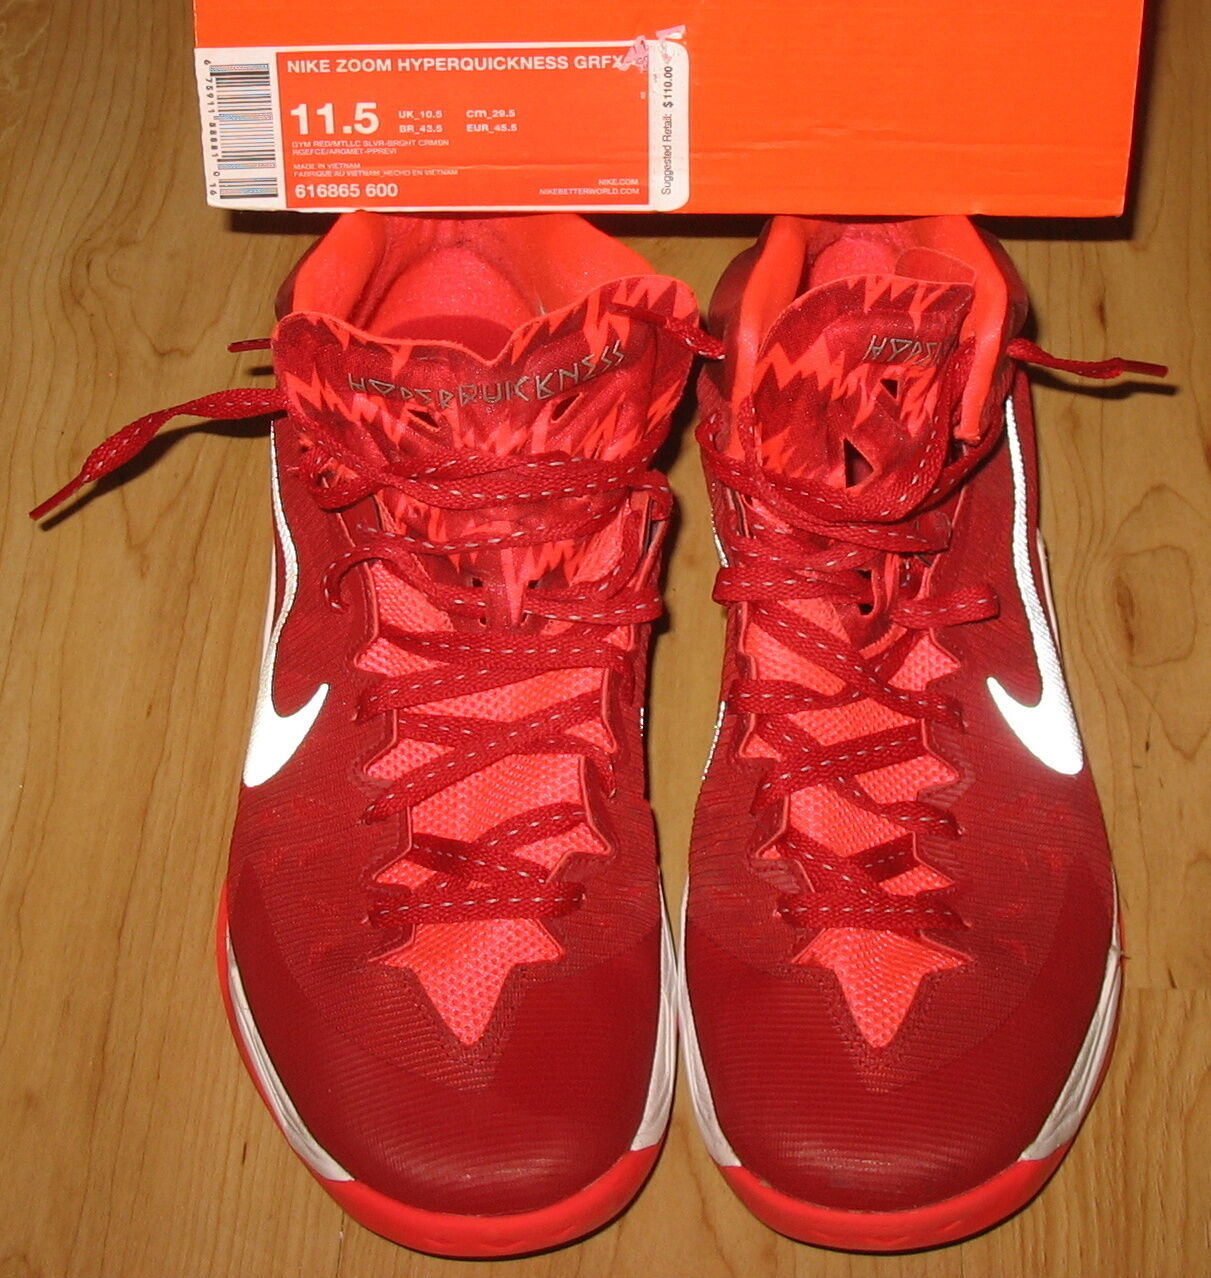 NEW NIKE ZOOM HYPERQUICKNESS GRFX Basketball shoes MENS Sz 11.5 Red MSRP  110